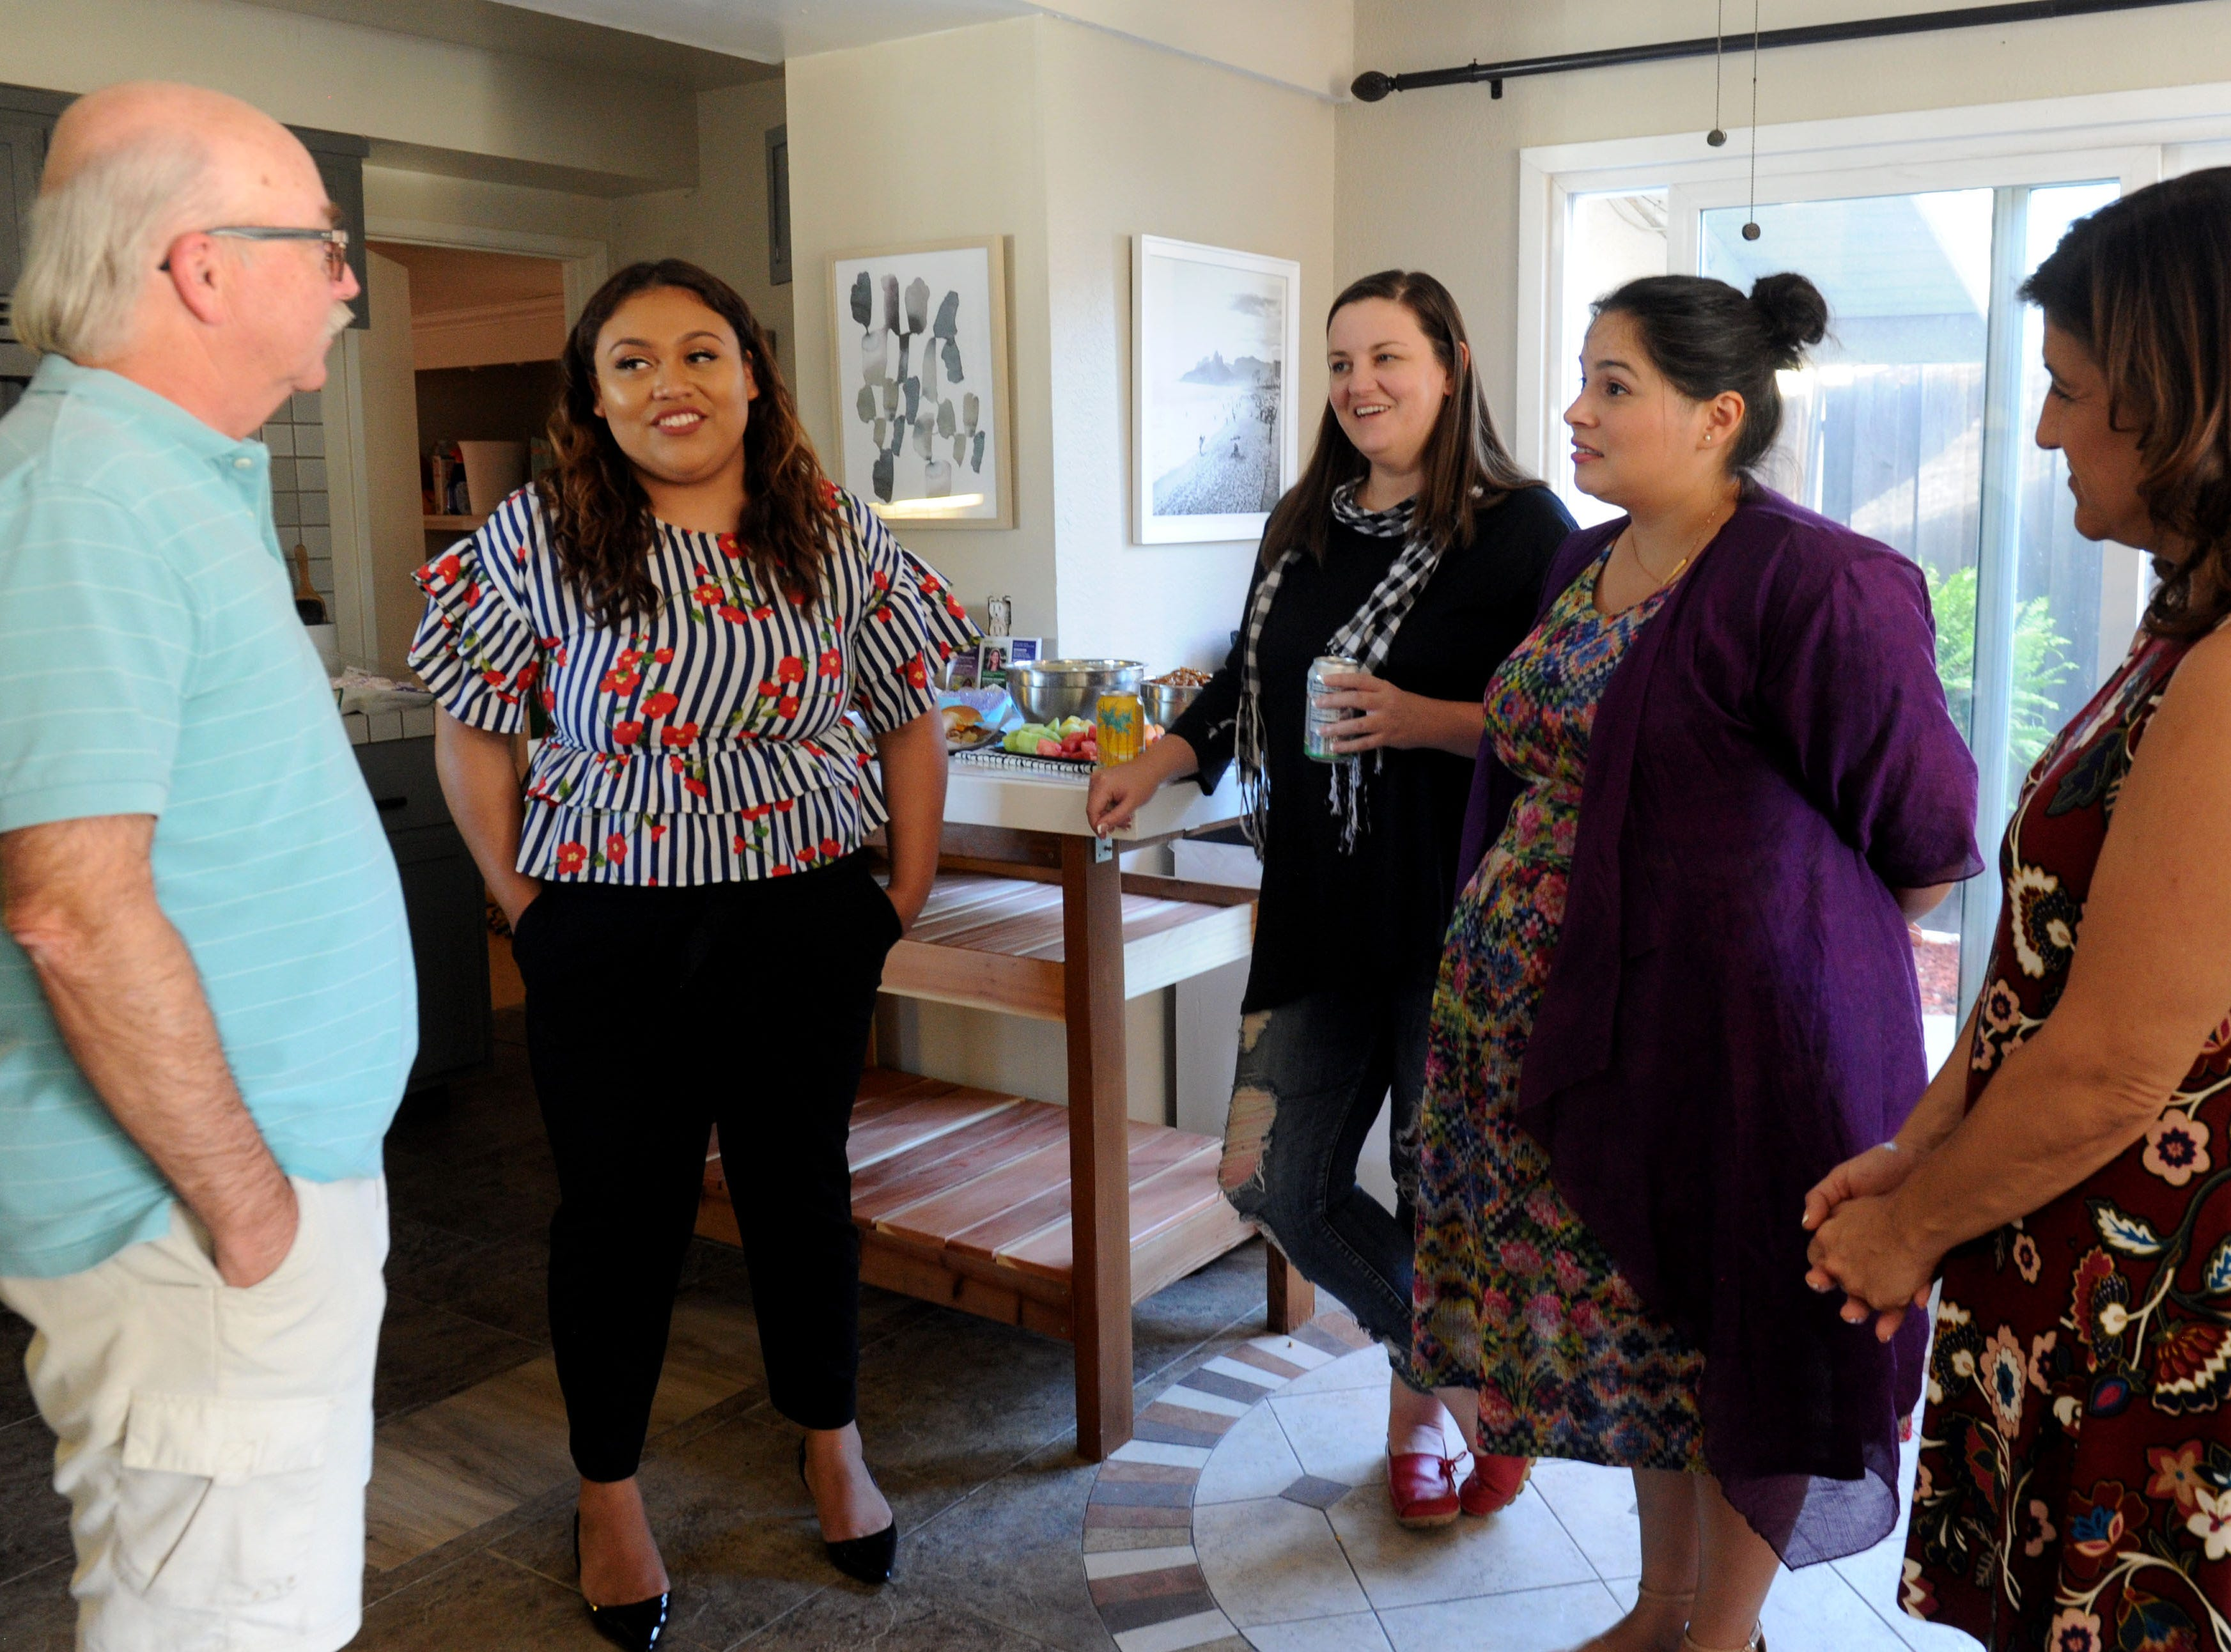 Nels Norene, left, a Camarillo resident since 1964, talks with Jessica Romero, Libby Higgins, campaign manager, Bev Dransfeldt and Susan Santangelo who are running as a ticket for Camarillo City Council.